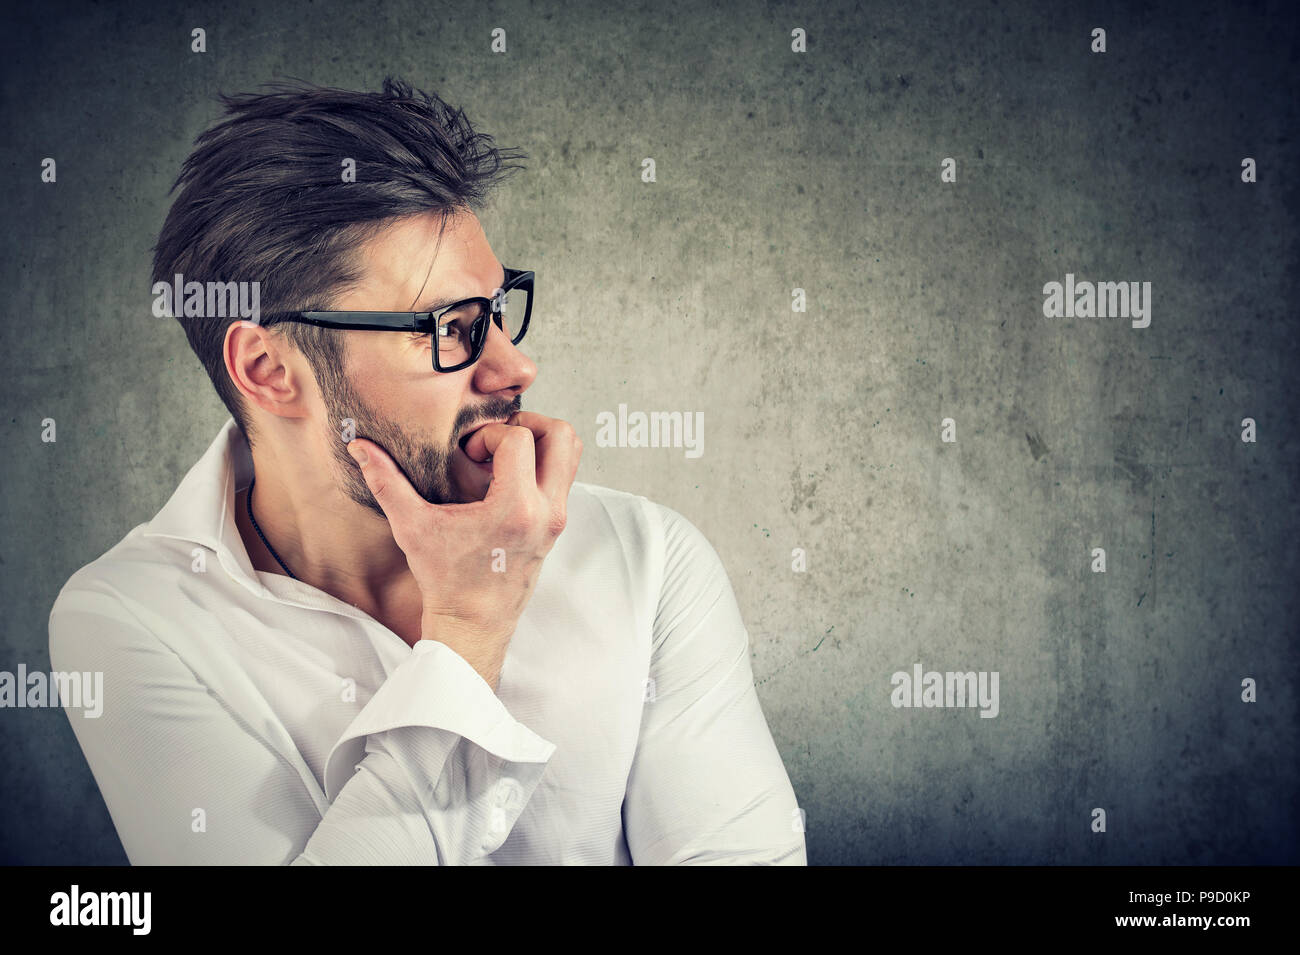 Adult bearded man having panic and phobia looking away while biting nails in anxiety on gray background - Stock Image